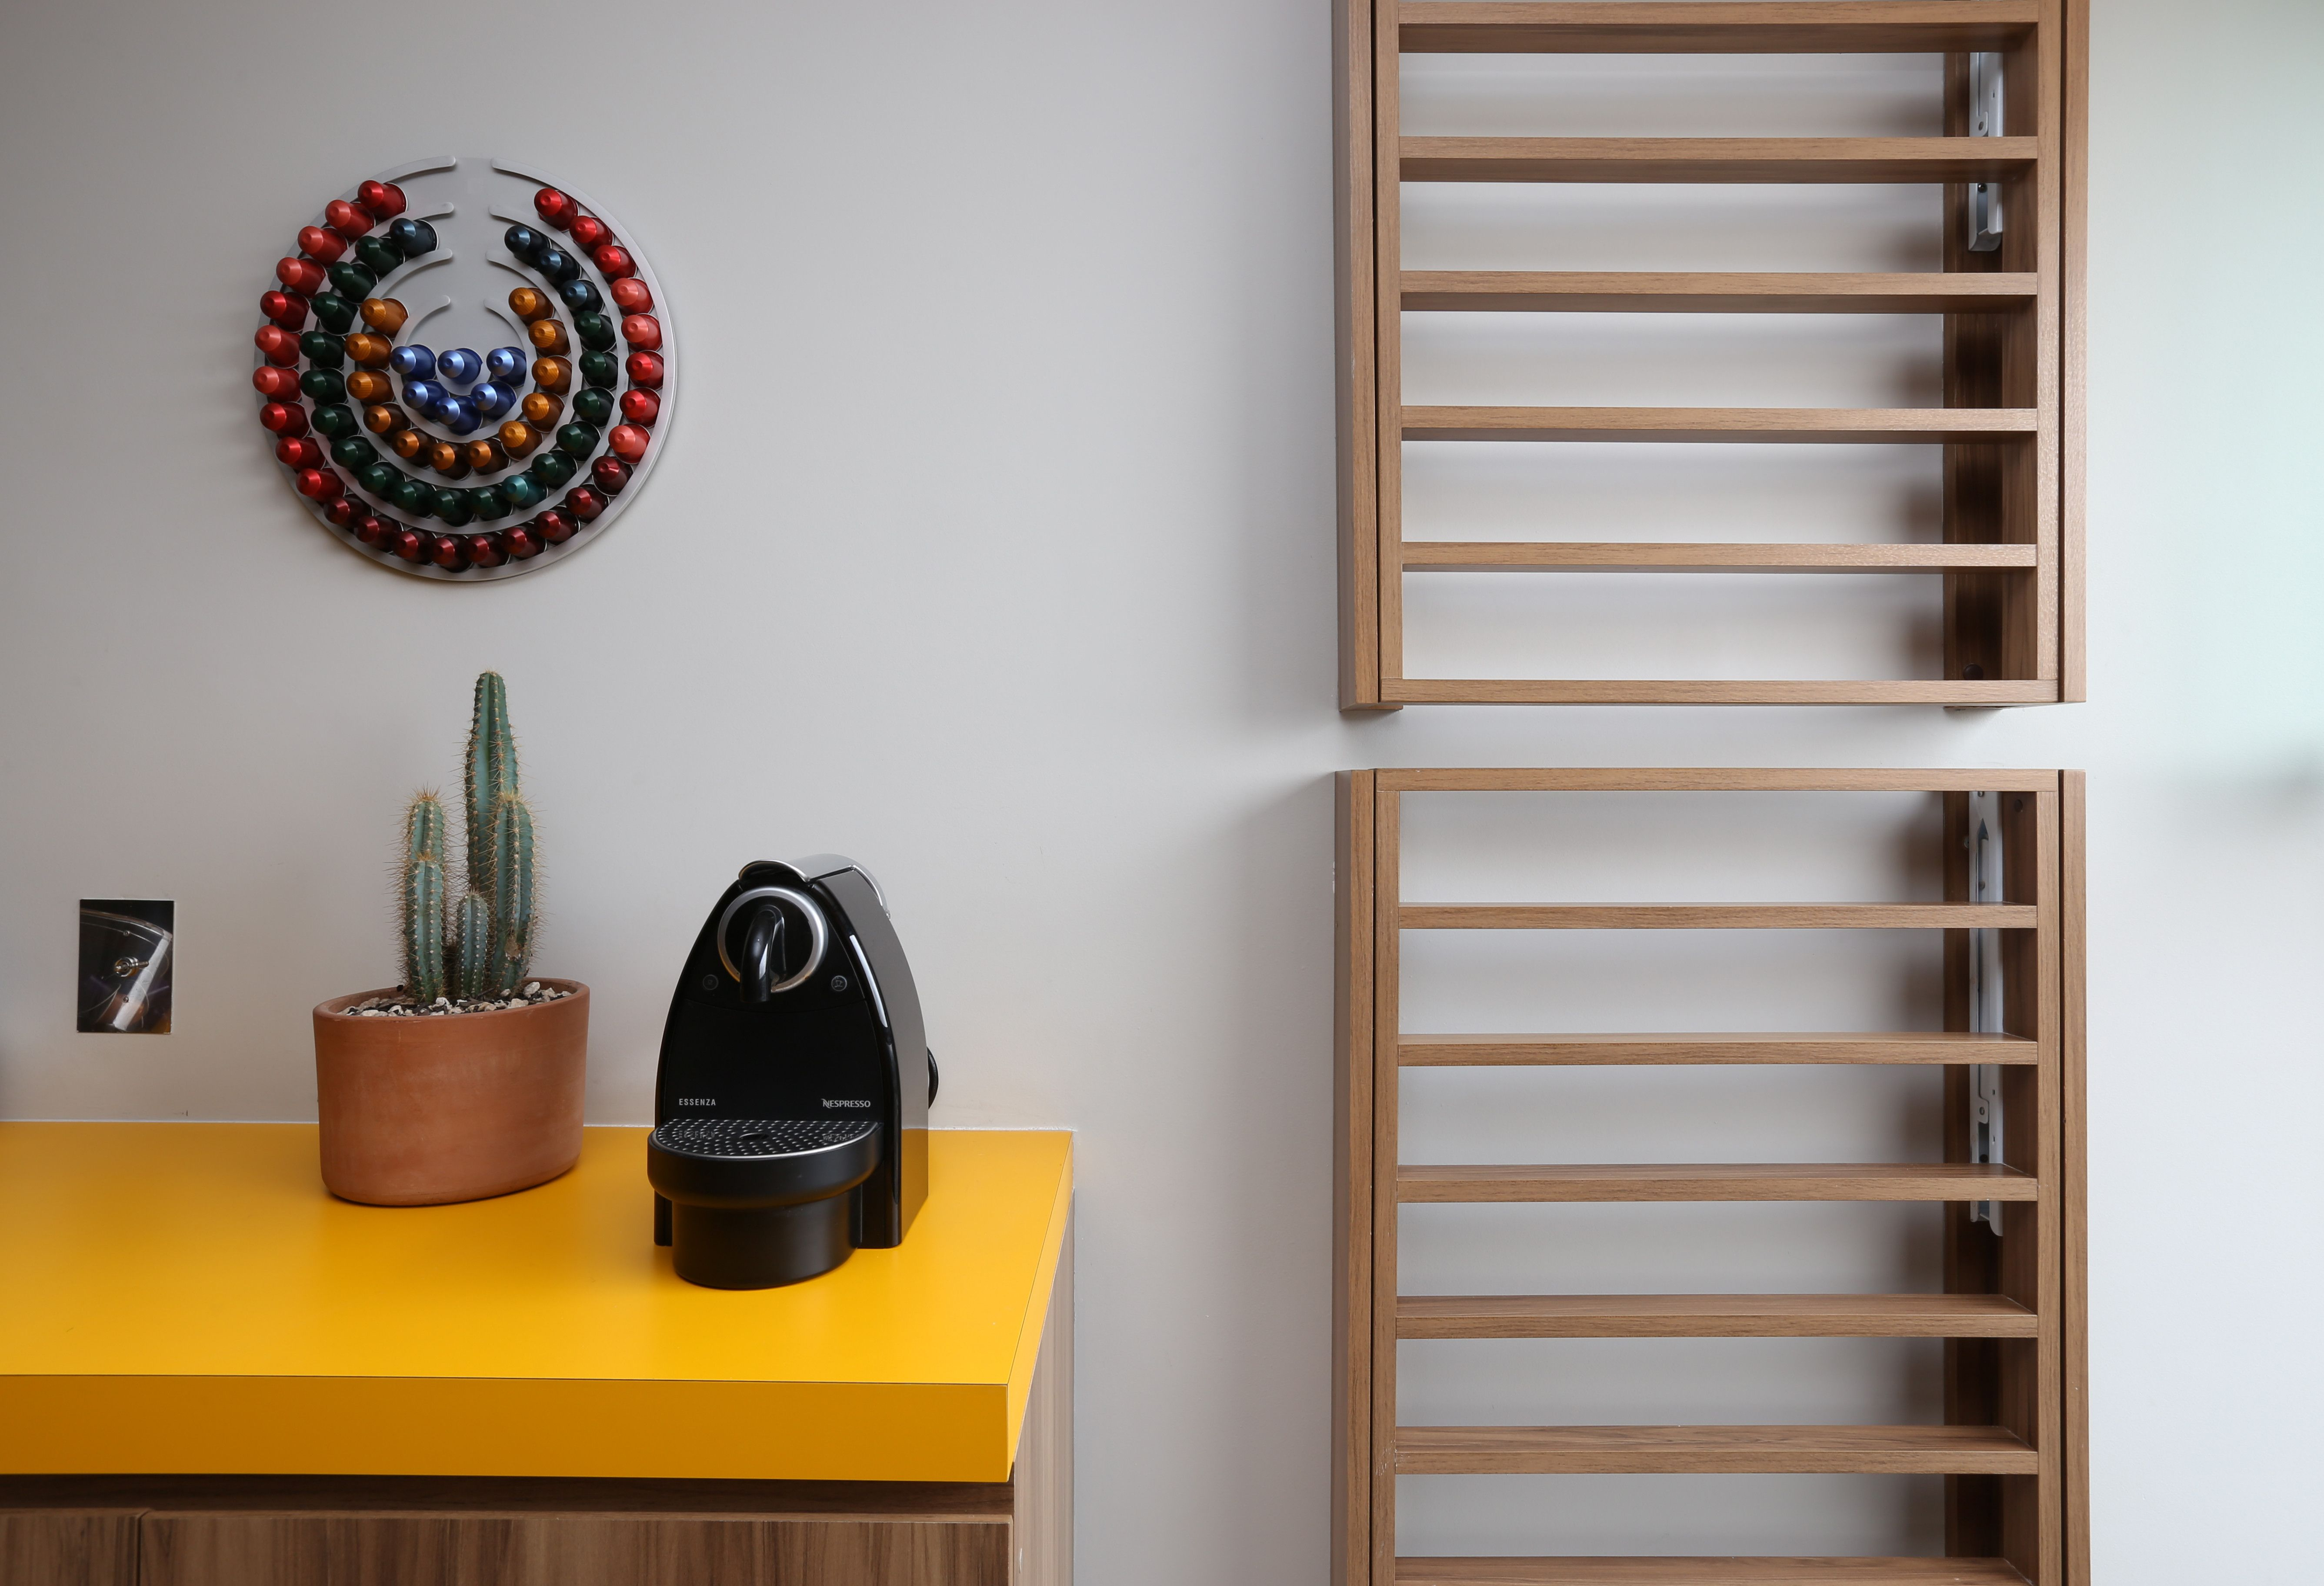 sp estudio maxhaus varal de madeira maxhaus e arquitetura on simple effective and easy diy shelves decorations ideas the way of appearance of any space id=87873